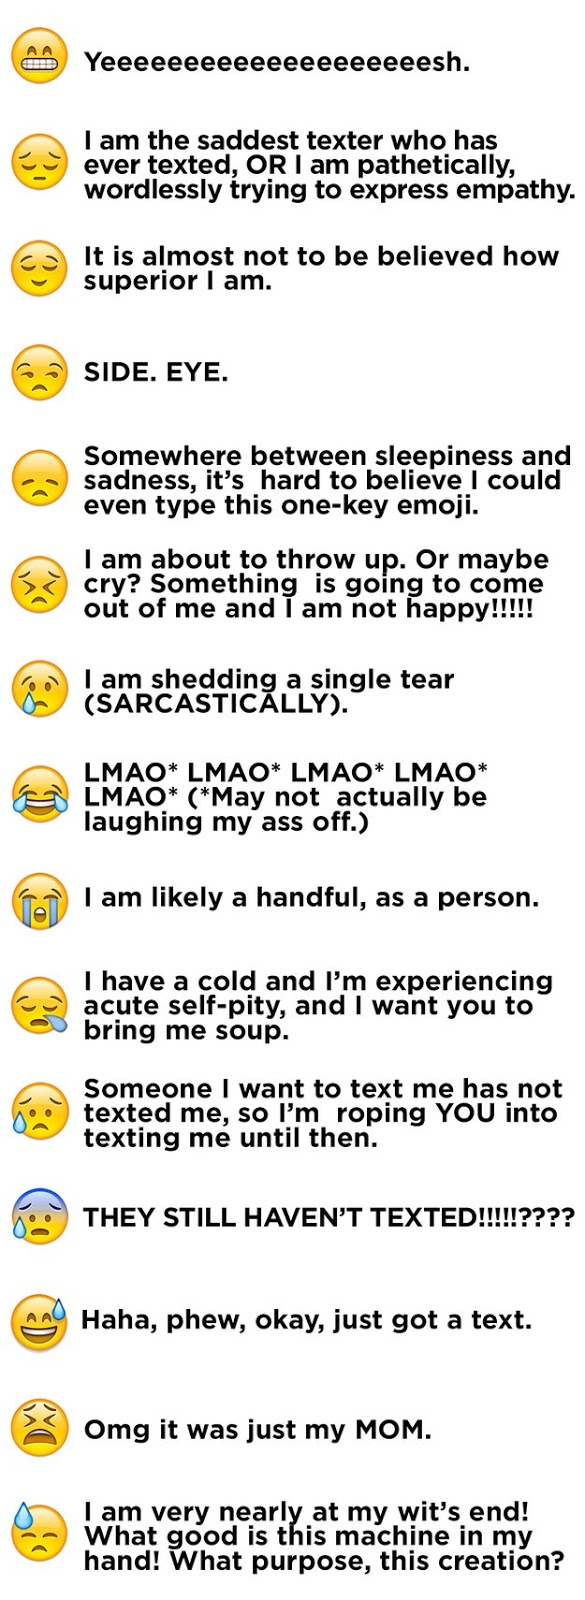 whatsapp smiley emoji symbols meanings explained here